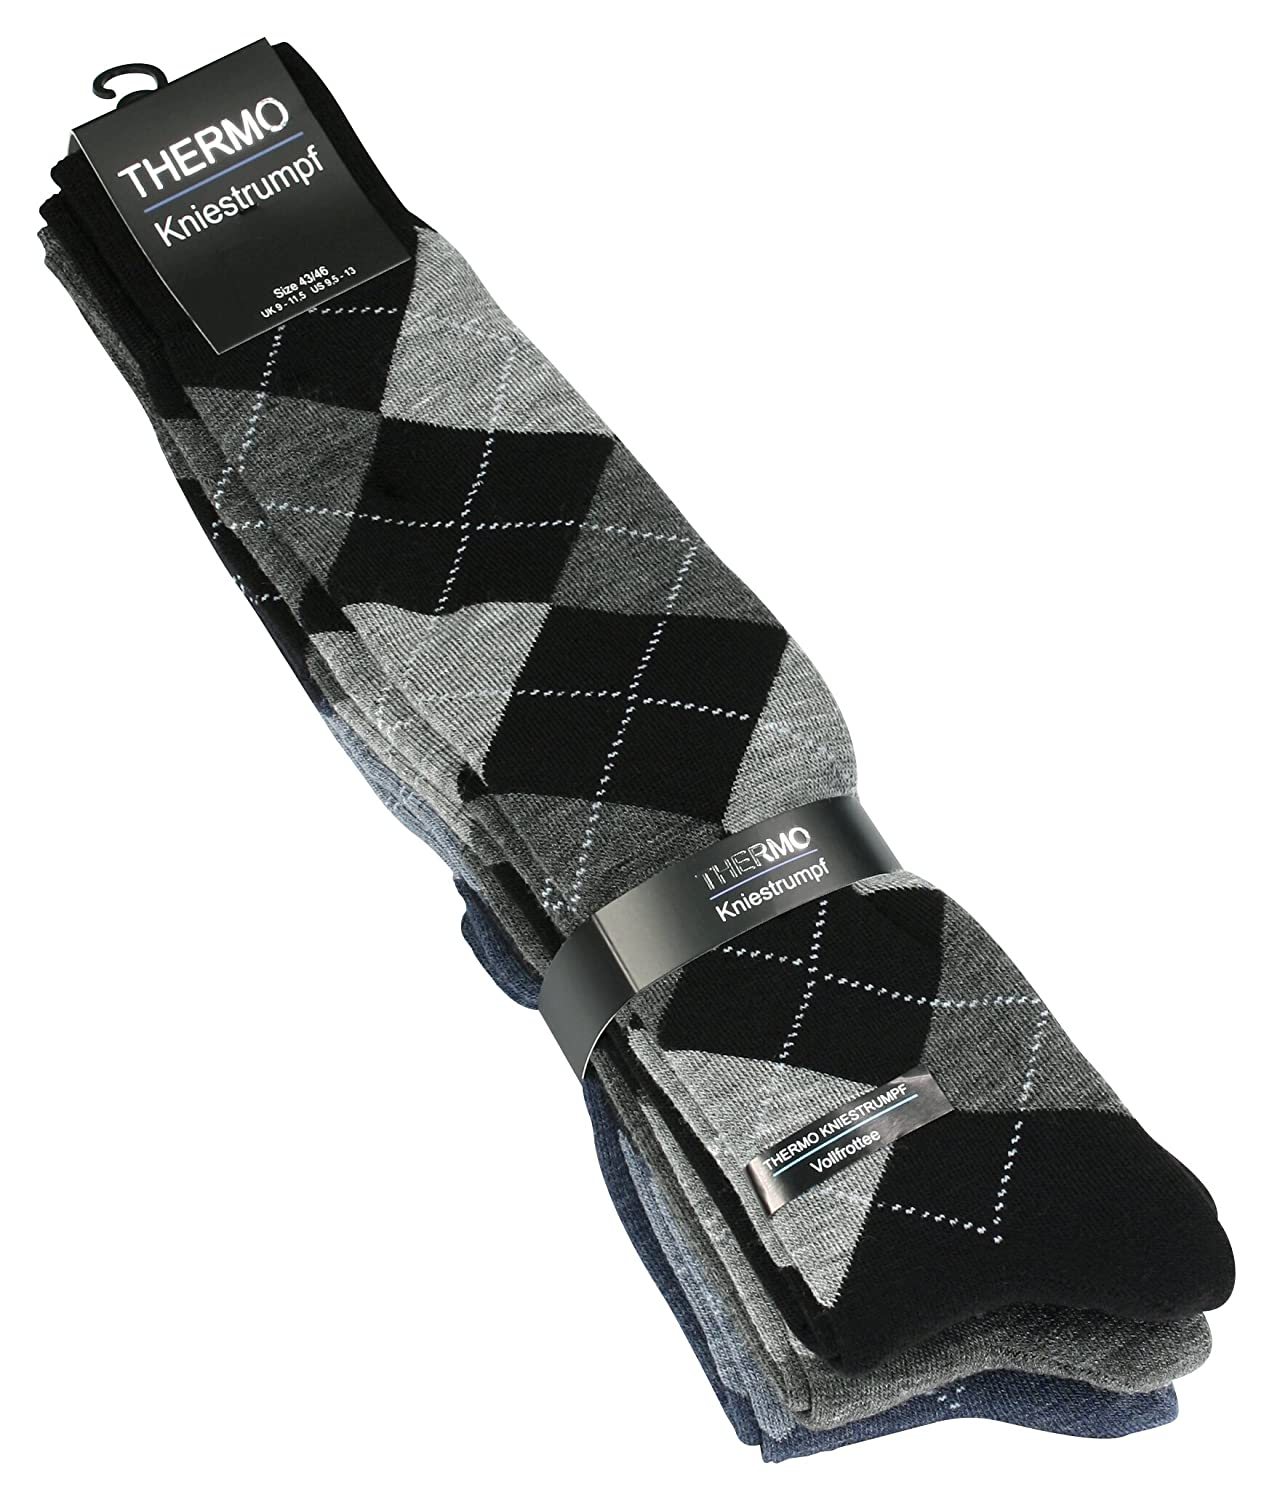 3 Pairs of Mens Full Terry knee high Thermal Socks with checked Pattern VCA Textil